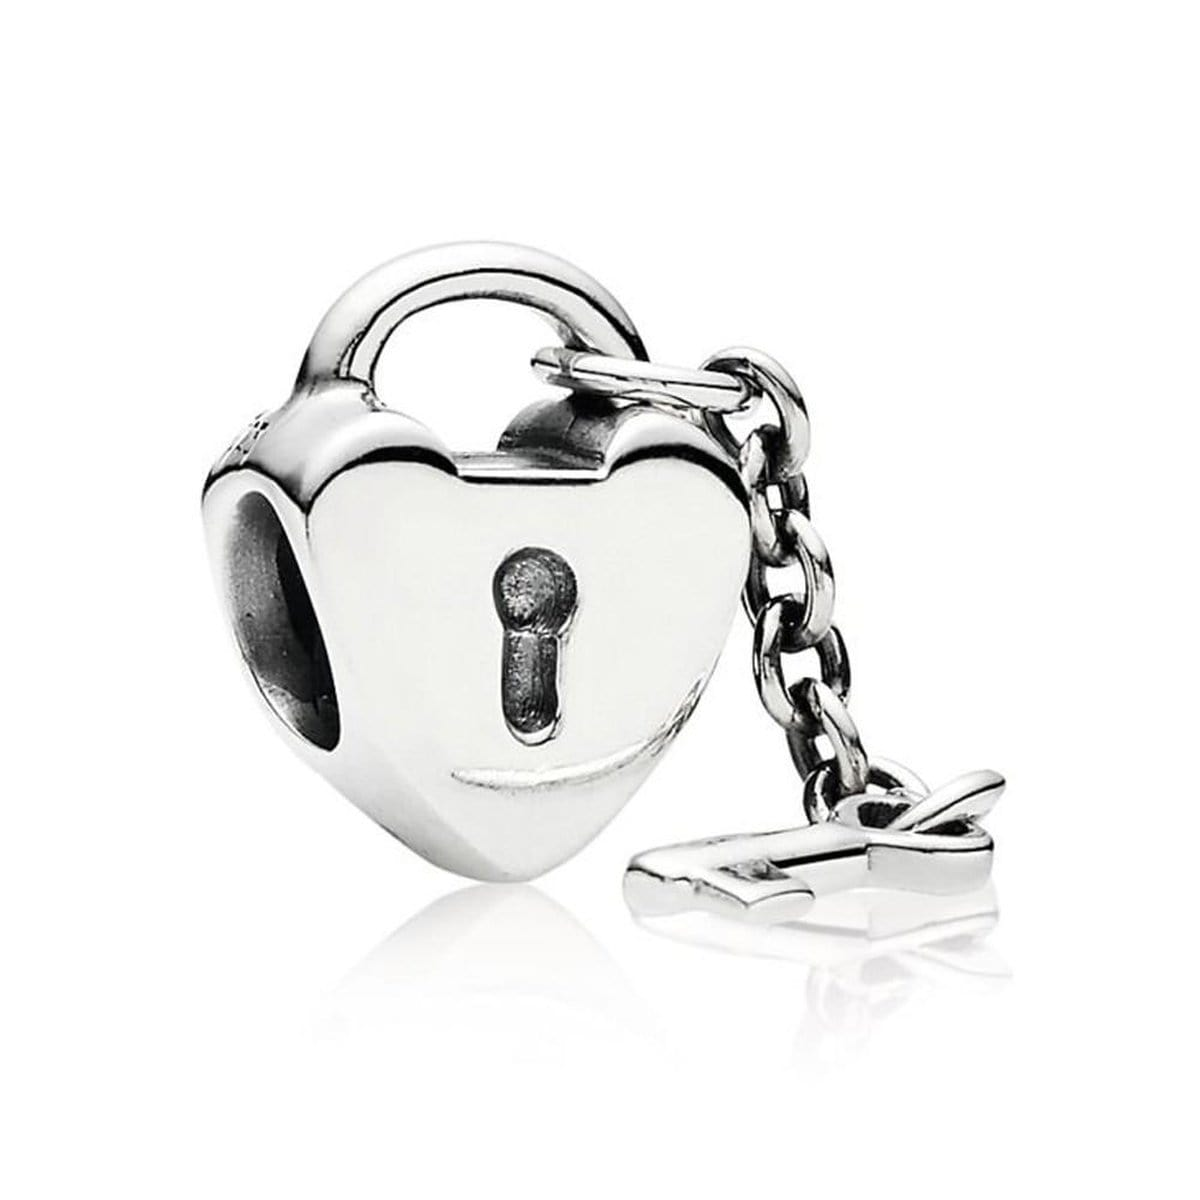 Key To My Heart Sterling Silver Charm - 790971-Pandora-Renee Taylor Gallery